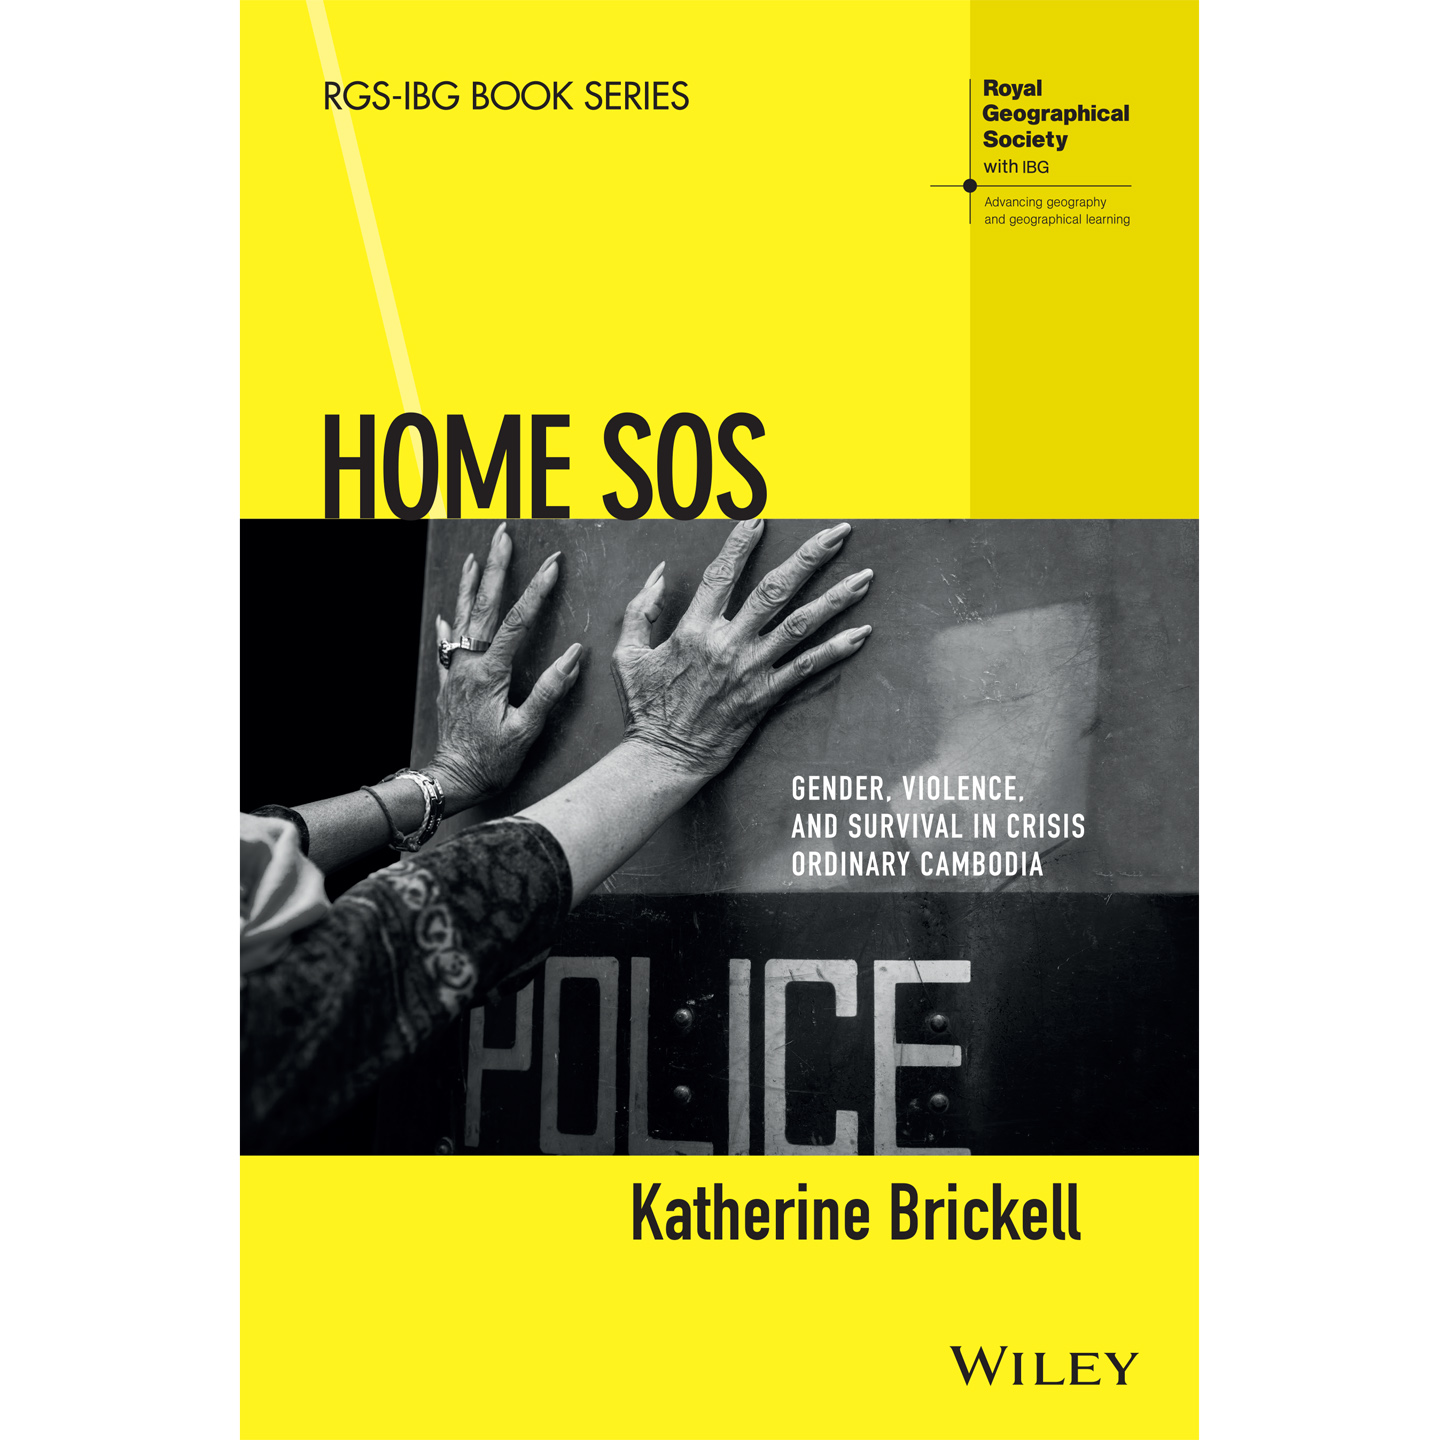 Home SOS cover (c) Wiley